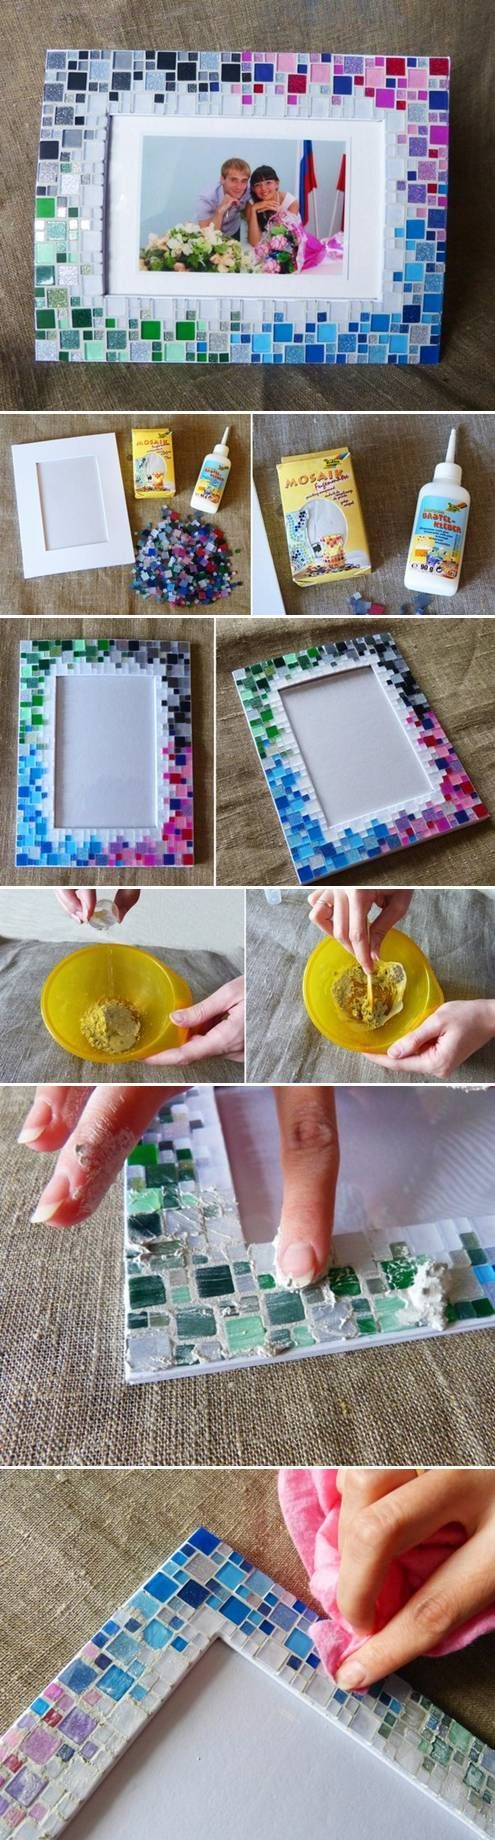 81 best diy images on pinterest gift ideas birthday presents ideas for mosaic projects instructions crafts do it yourself solutioingenieria